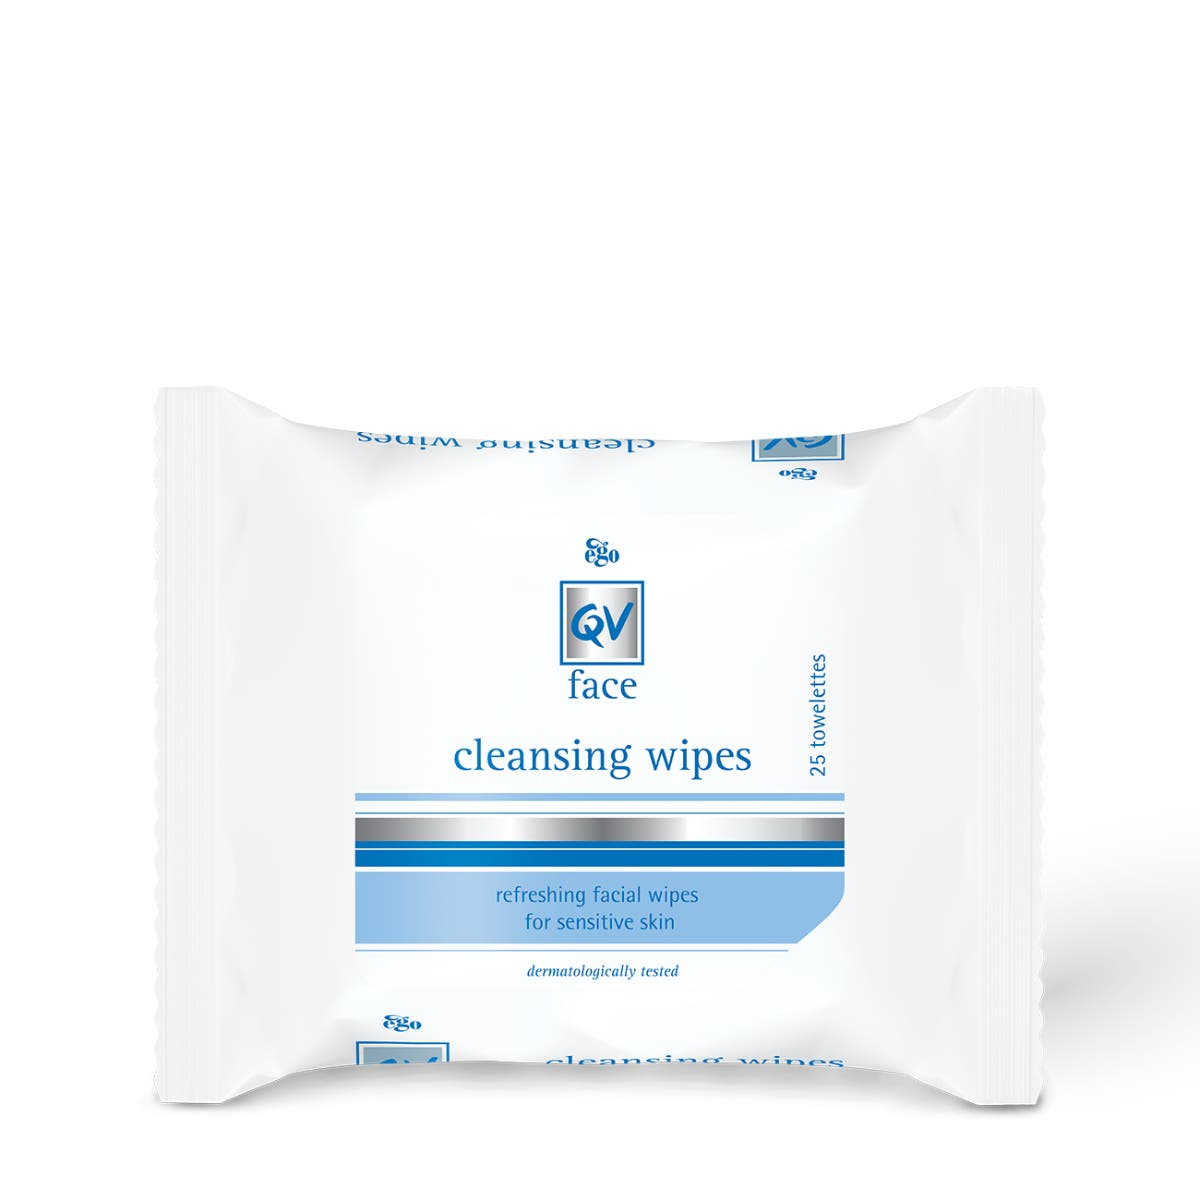 QV Face Cleansing Wipes